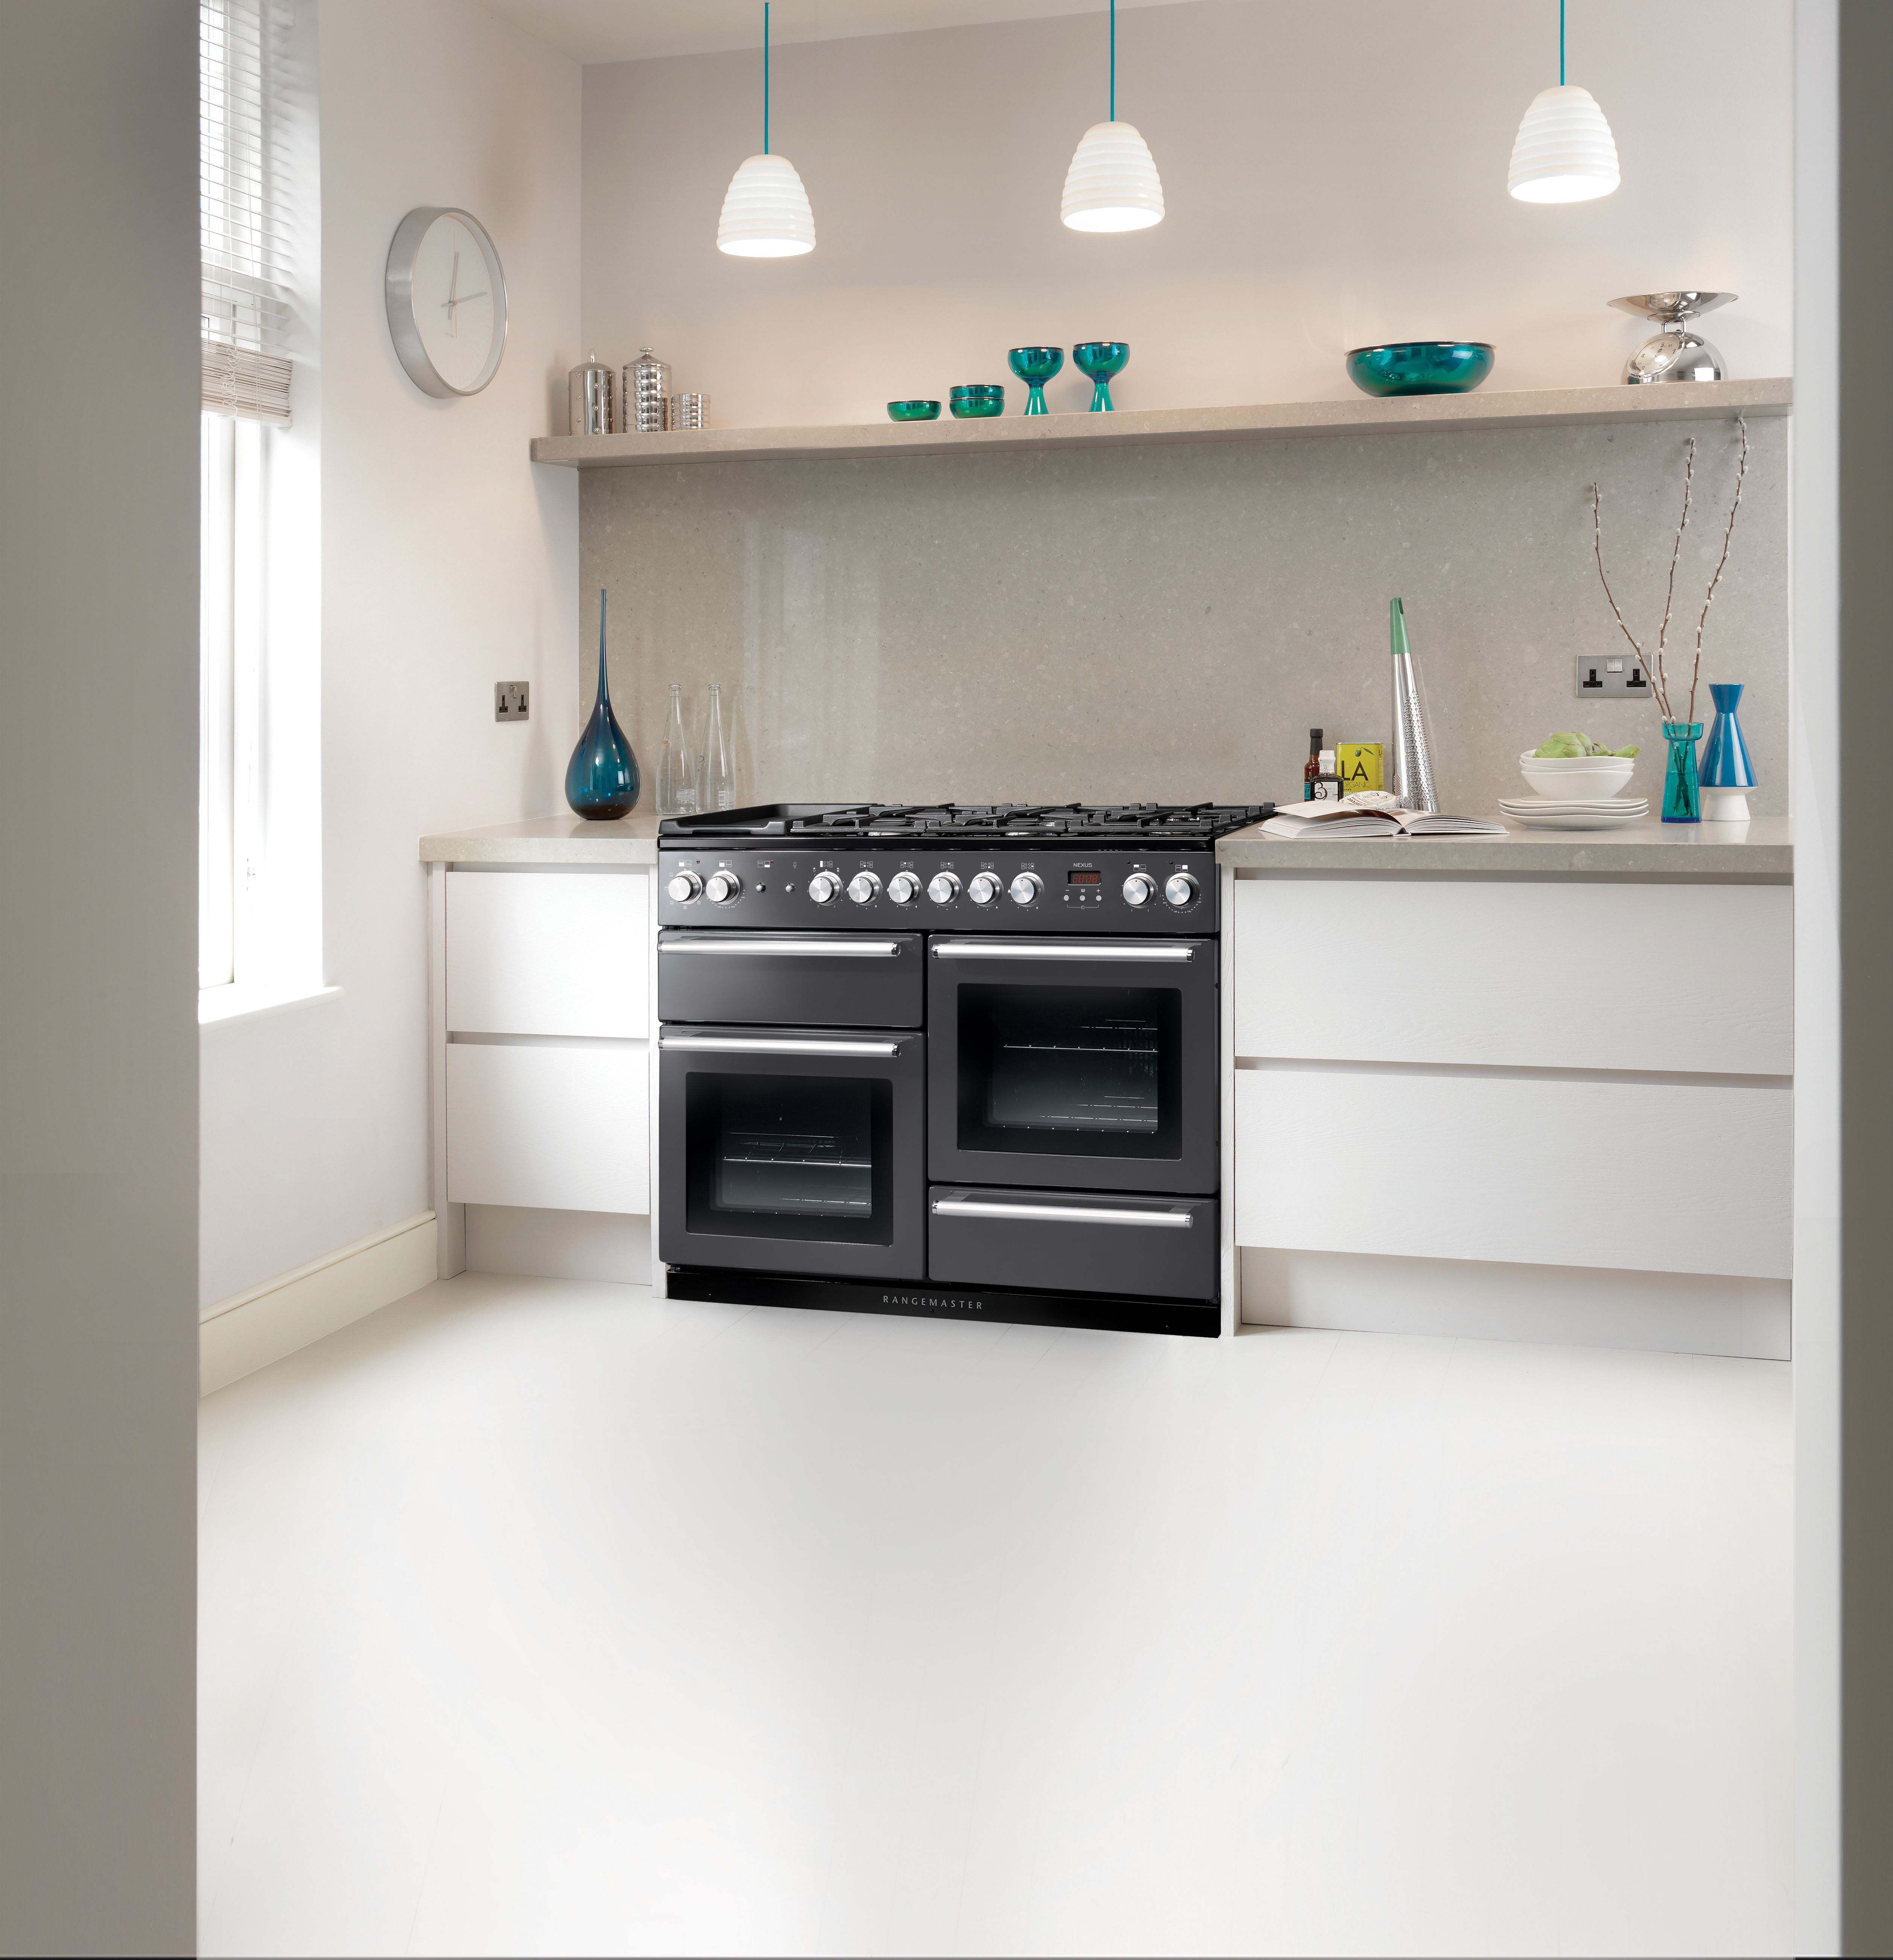 kitchen design with range cooker. The All New Rangemaster Nexus 110 Range Cooker  Includes Metal Rotary Controls And Bread Proving Drawer I Want This Stove Decor Pinterest Handleless Kitchen Range